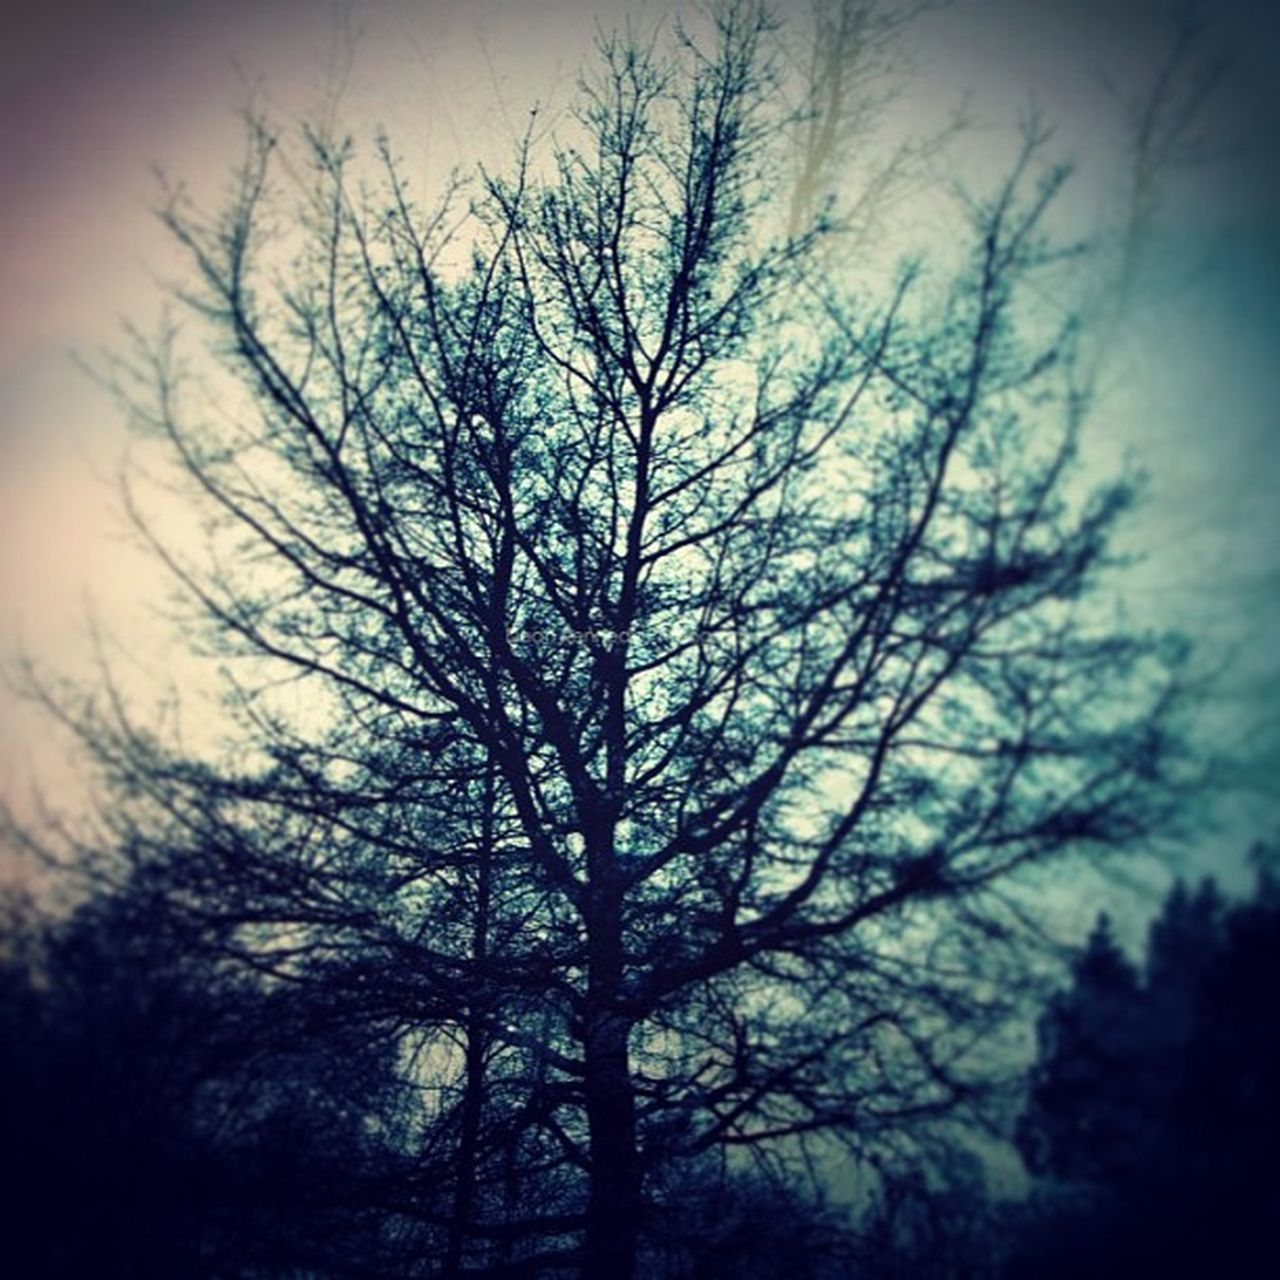 nature, tree, bare tree, tranquility, beauty in nature, forest, no people, outdoors, sky, branch, landscape, day